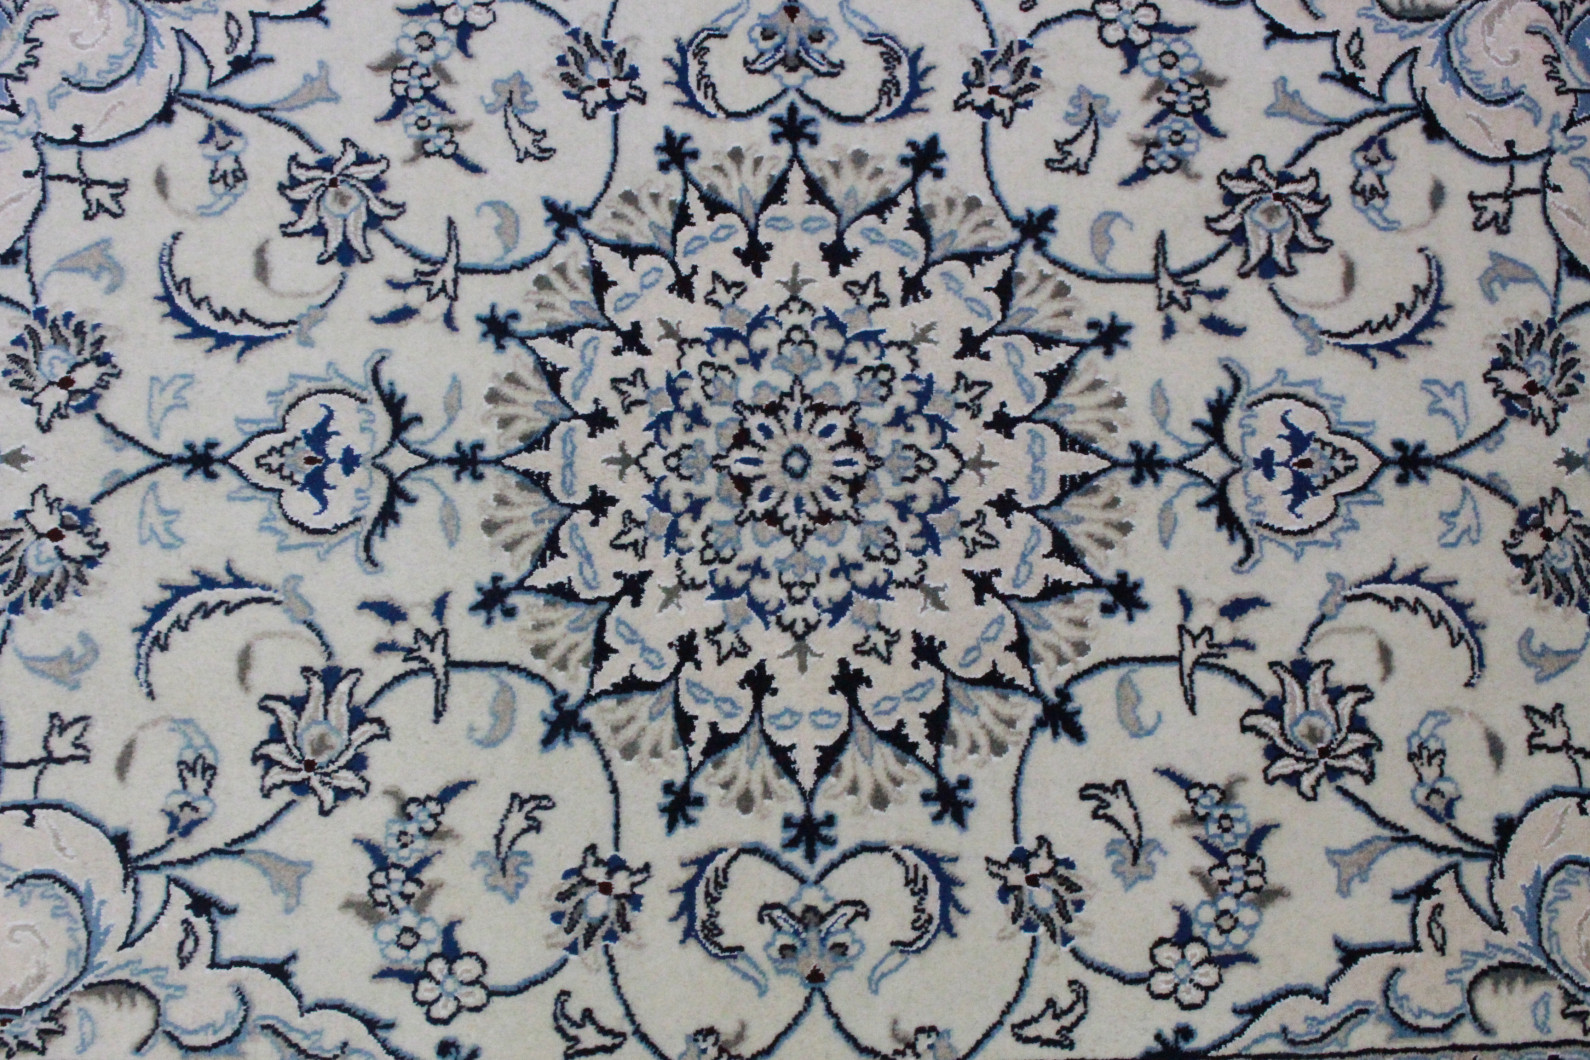 nain teppich beige blau in 200x120 5120 58153 bei kaufen. Black Bedroom Furniture Sets. Home Design Ideas